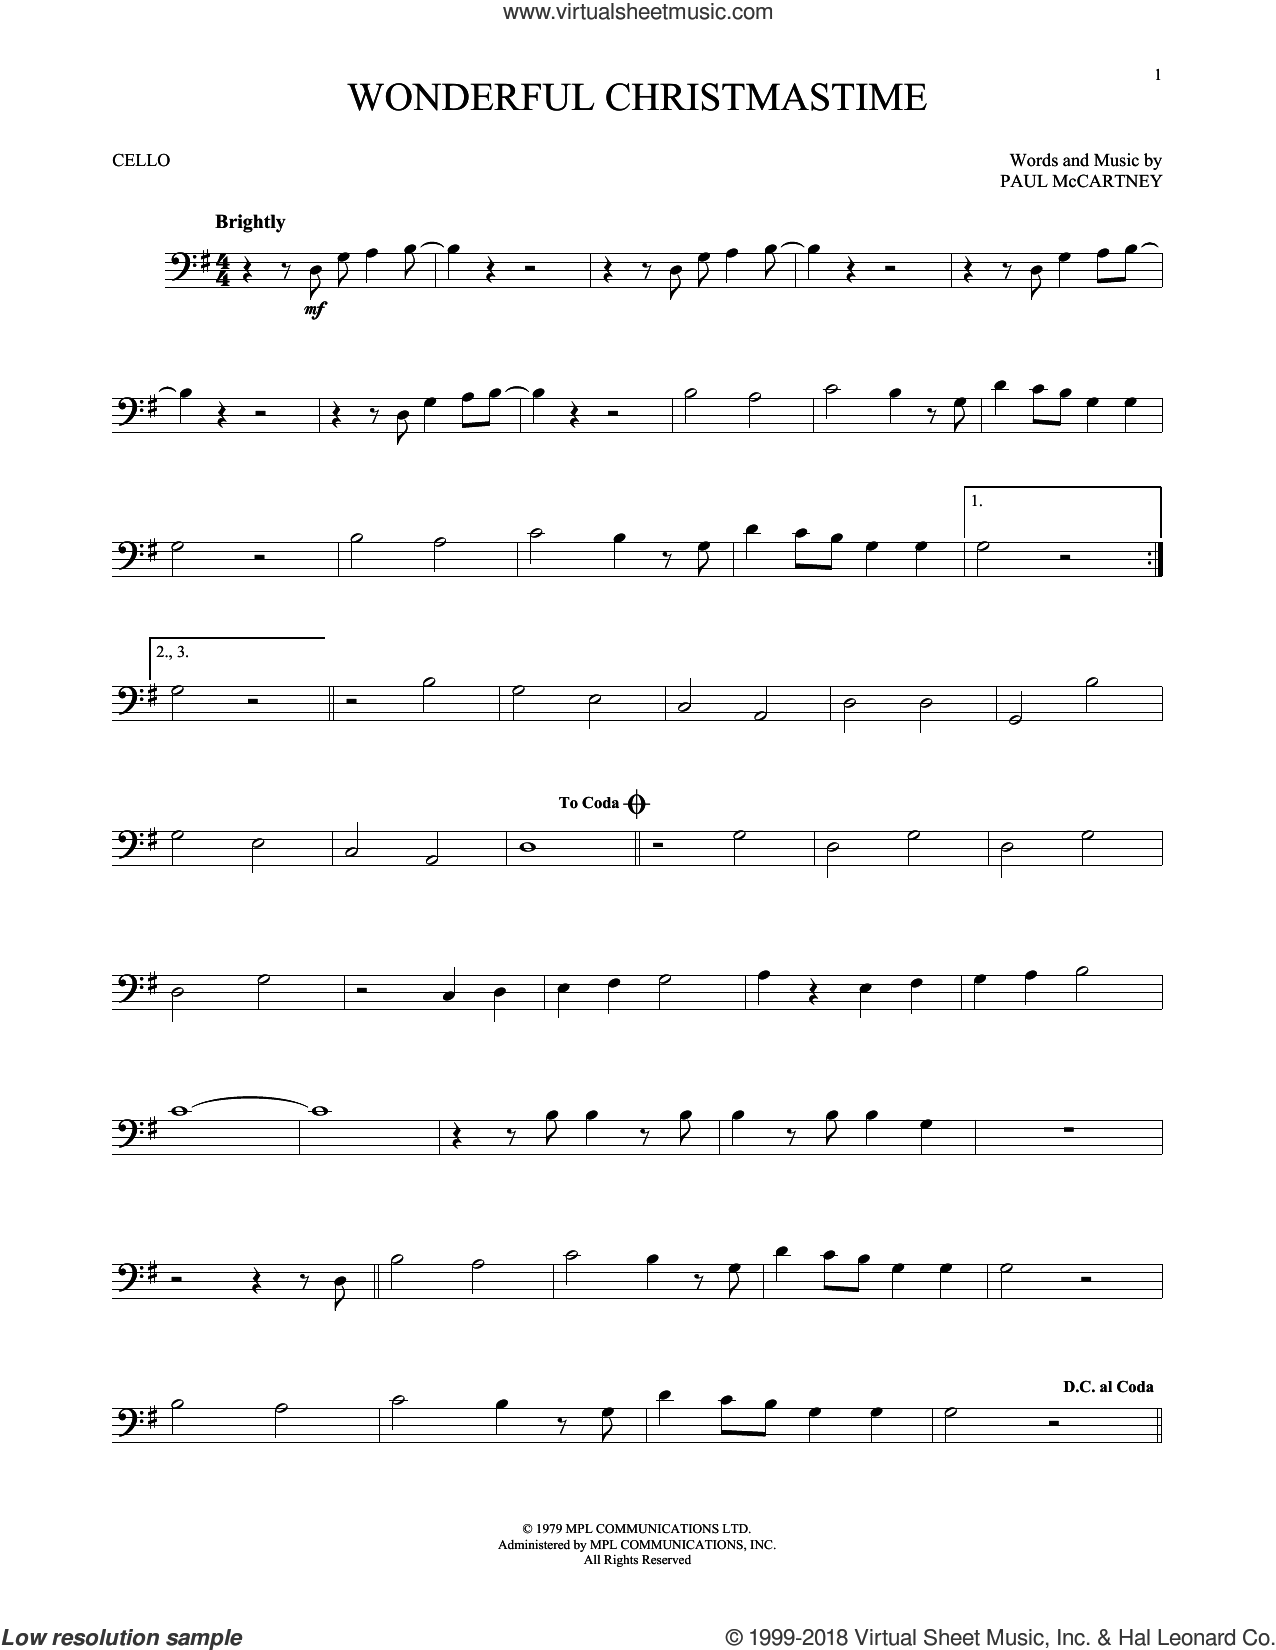 Wonderful Christmastime sheet music for cello solo by Paul McCartney, Eli Young Band and Straight No Chaser featuring Paul McCartney, intermediate skill level